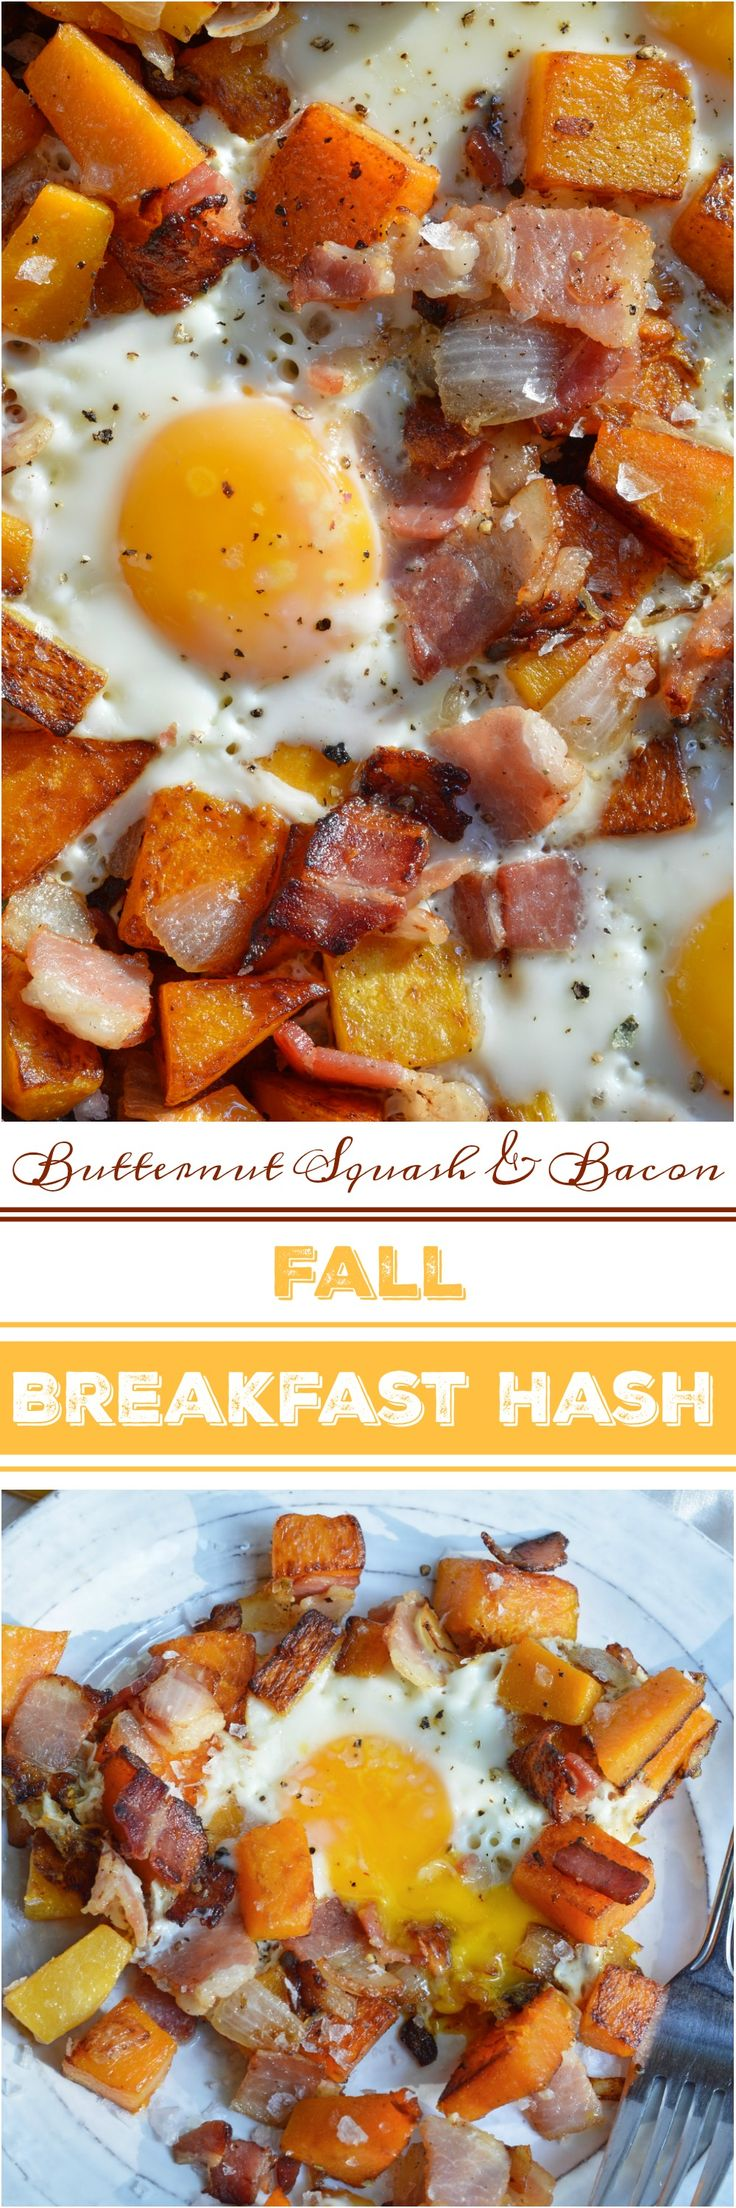 The air is getting chilly and it is time for cozy comfort food. This Fall Breakfast Hash Recipe will get you going in the morning! It is an easy breakfast recipe made with butternut squash, bacon, onions and eggs. ad